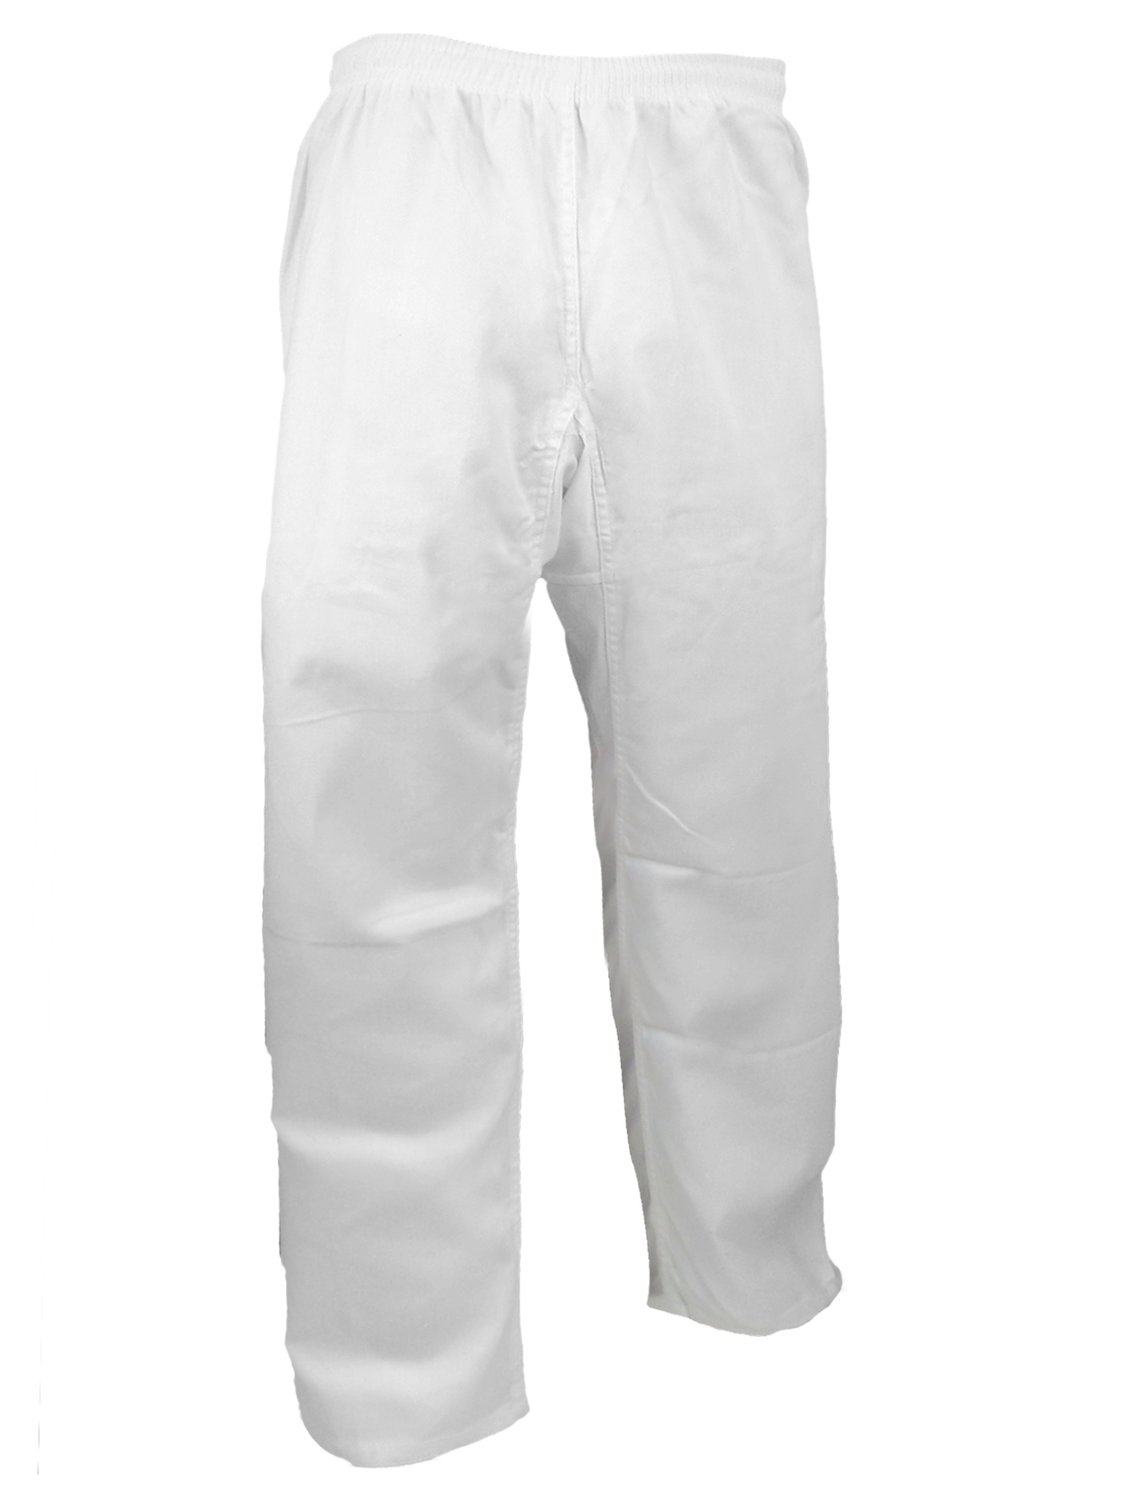 Karate Uniform, Pants, Light Weight, White